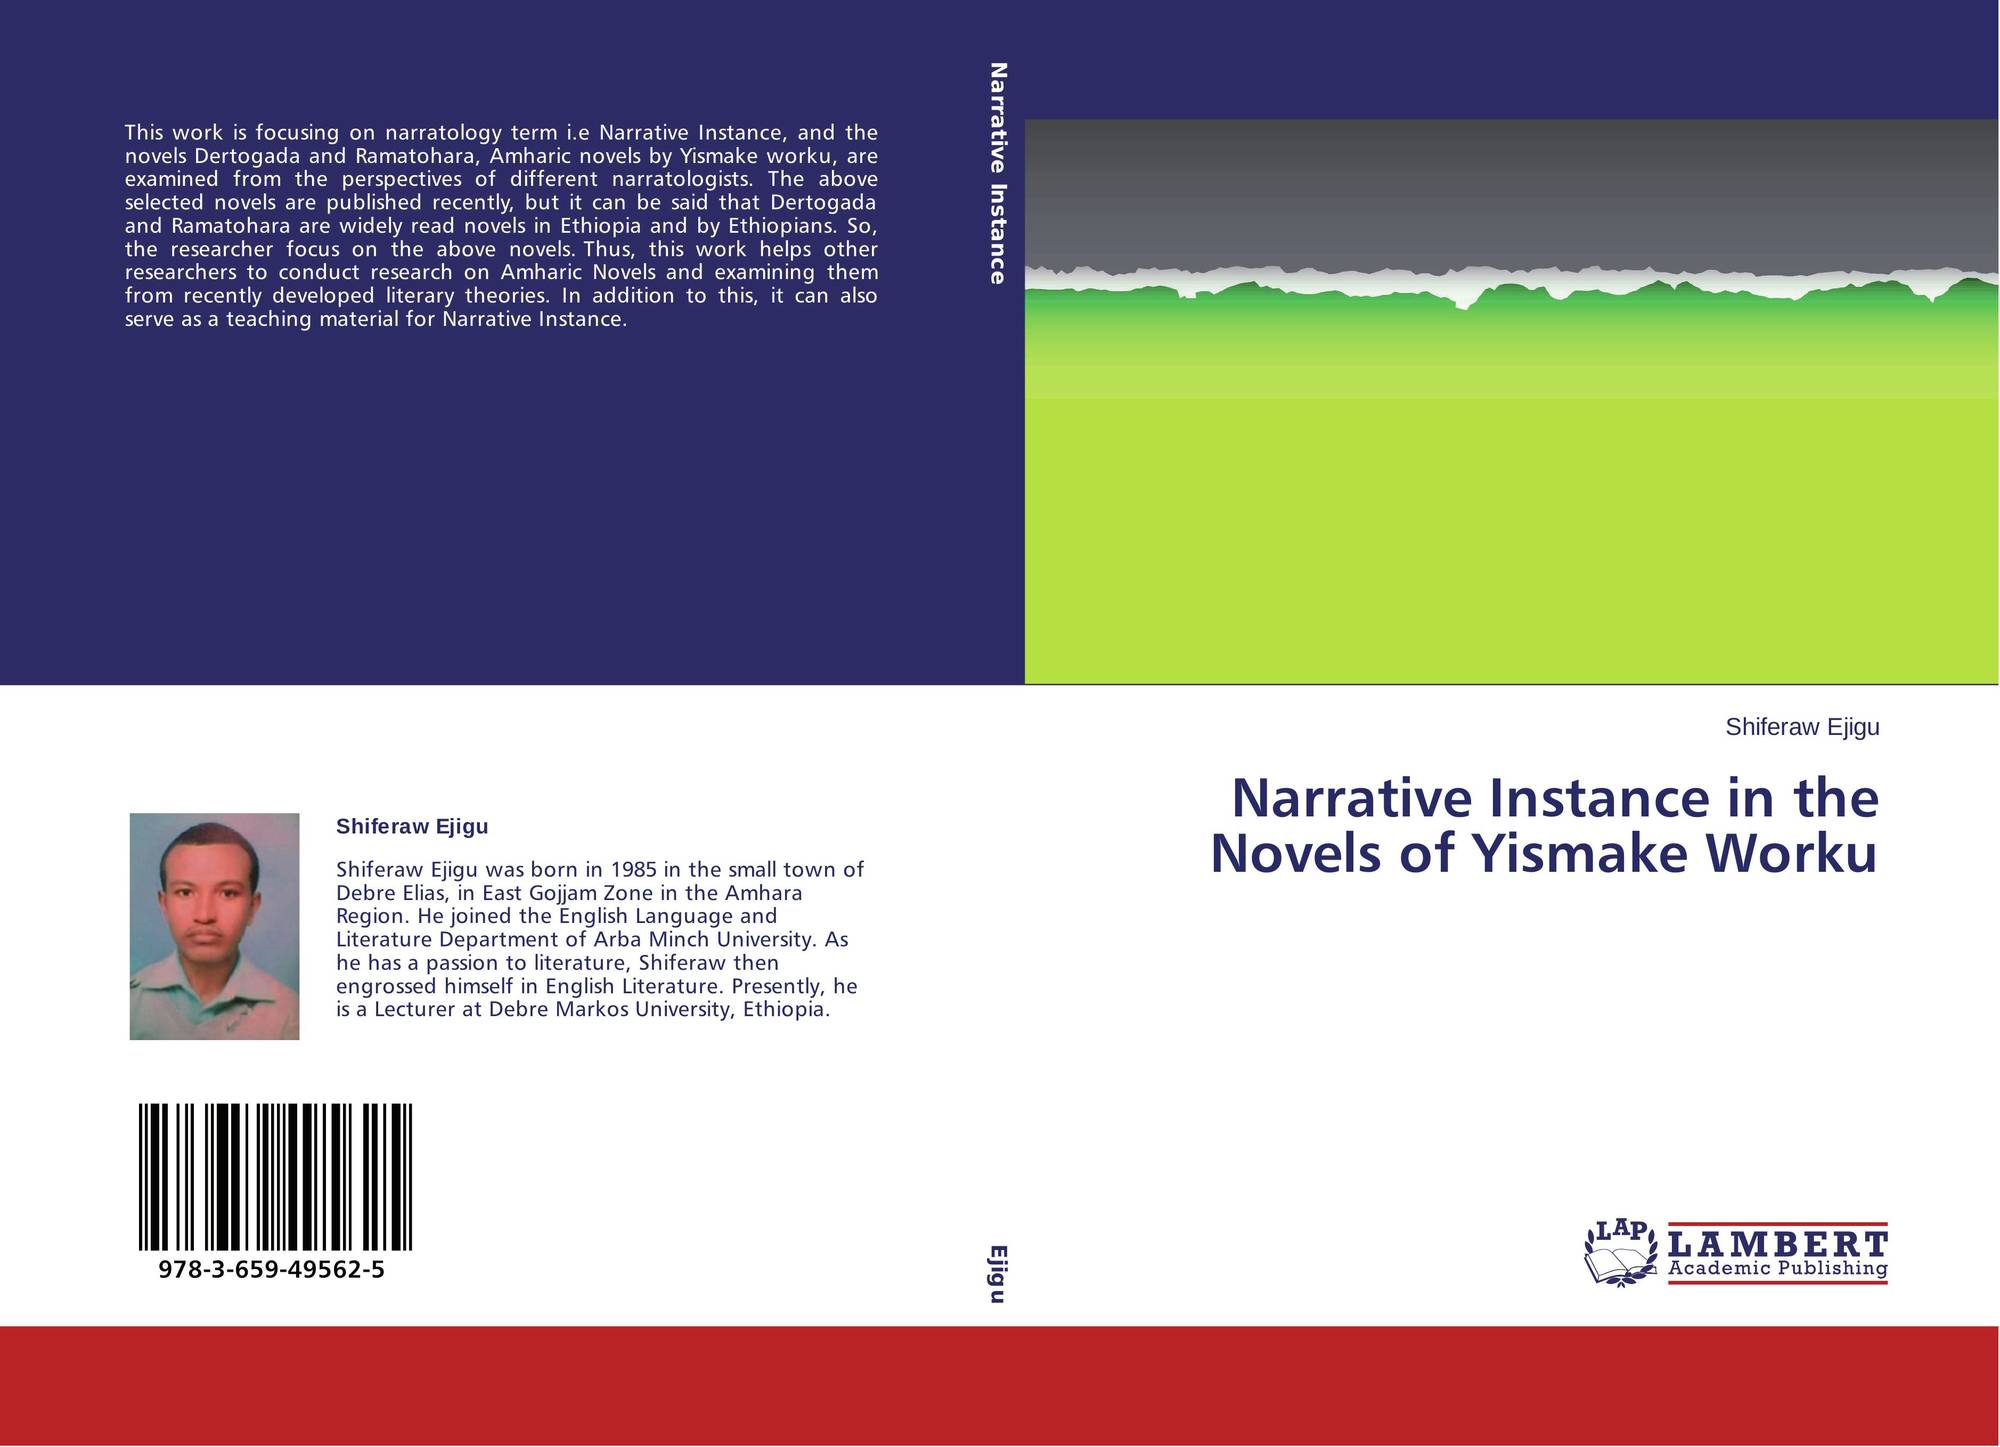 Narrative Instance in the Novels of Yismake Worku, 978-3-659